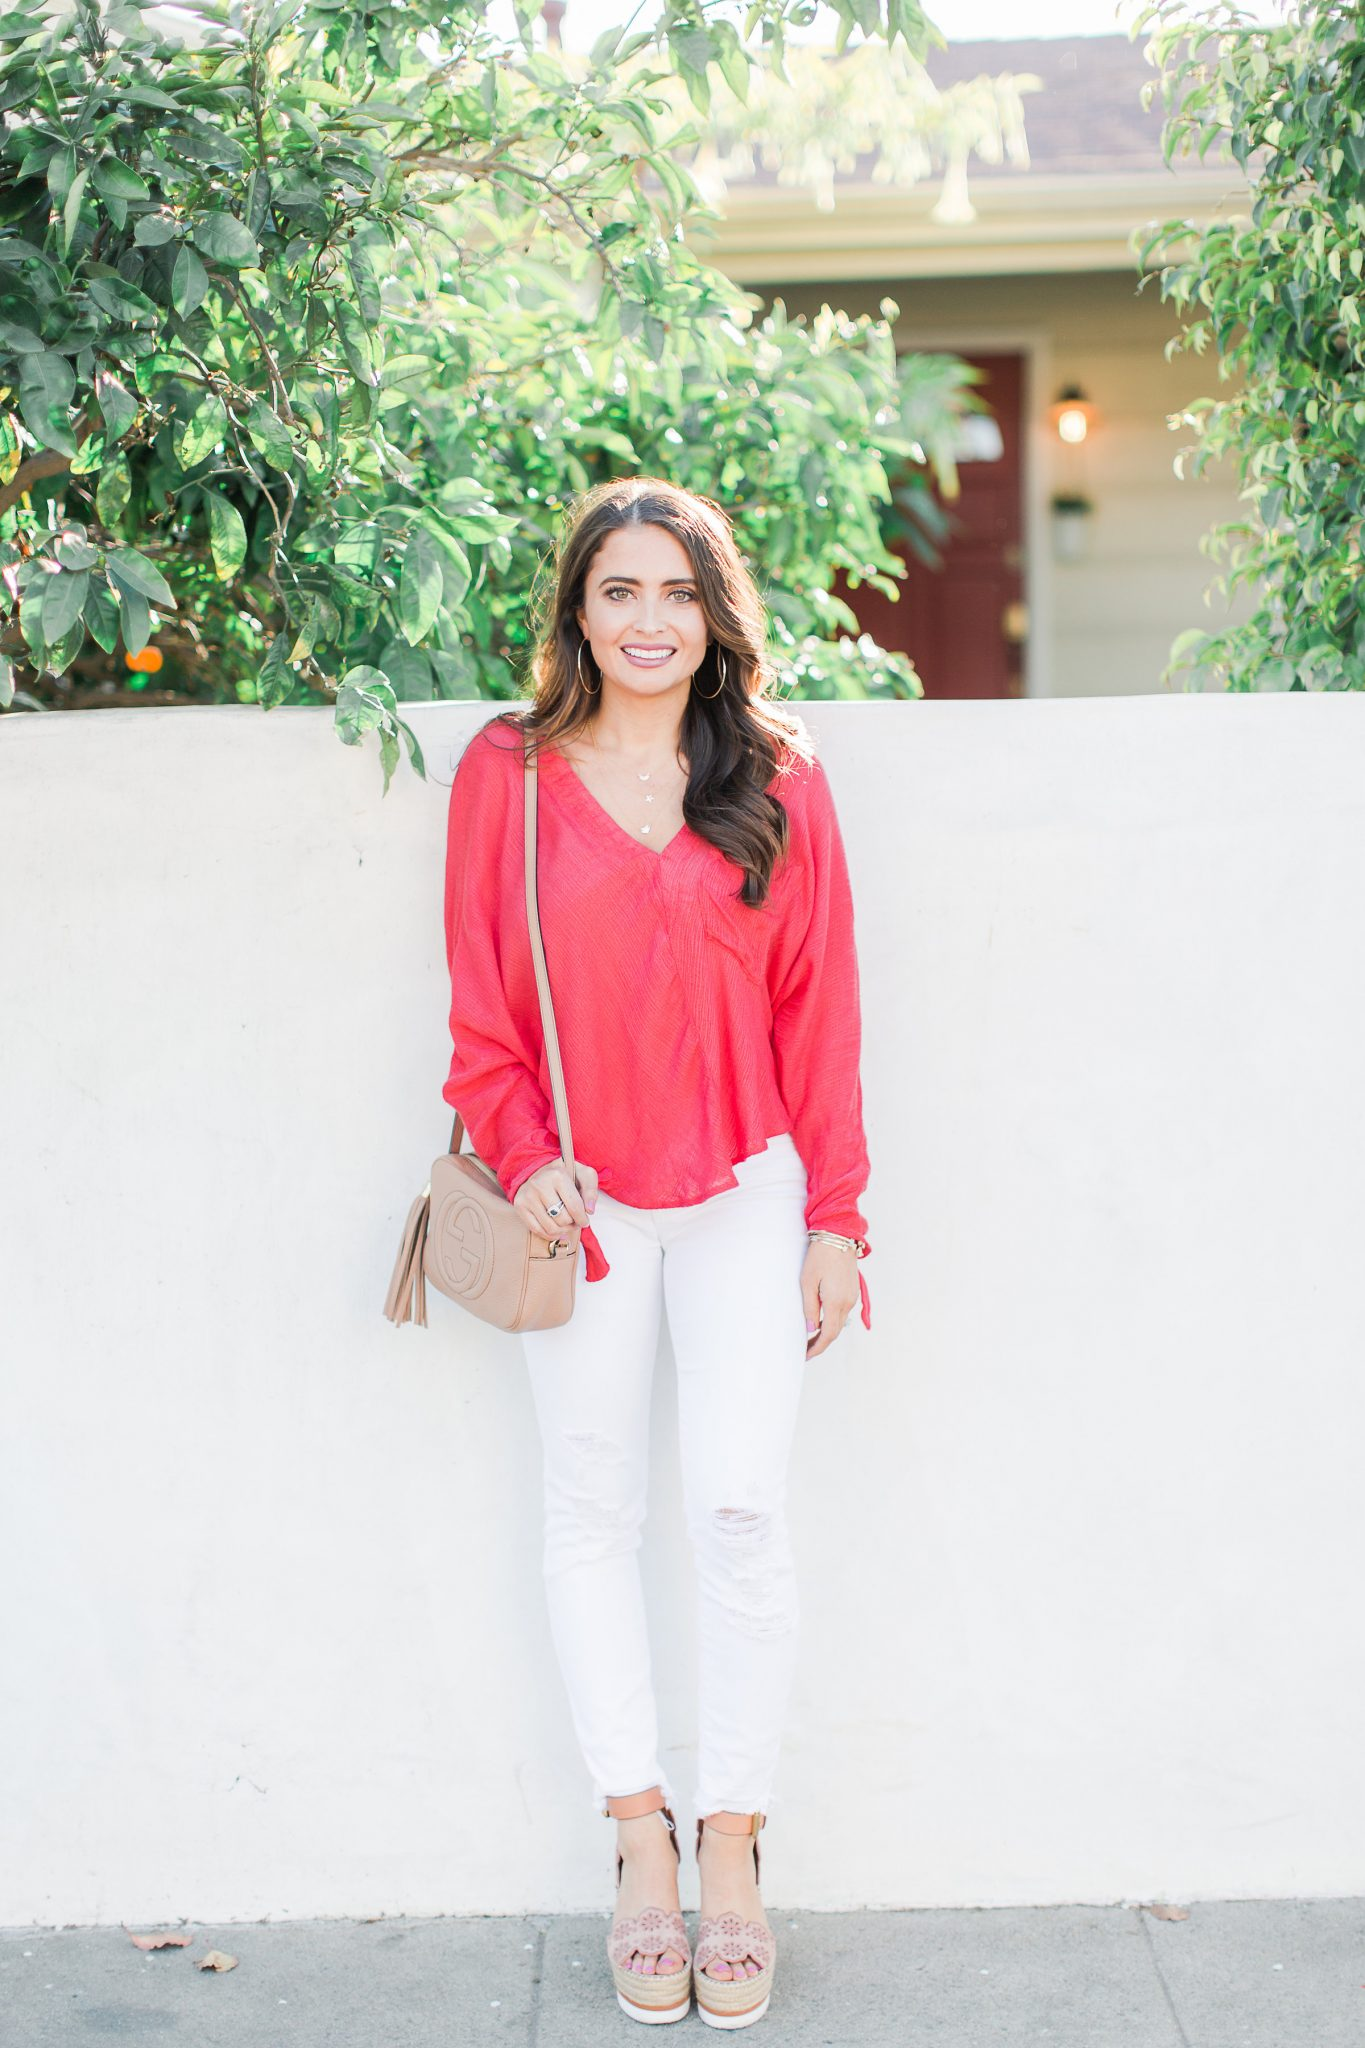 Hot pink Free People Top and White J Brand Jeans and Gucci Bag - Shopbop Sale Spring Picks featured by popular Orange County fashion blogger, Maxie Elle